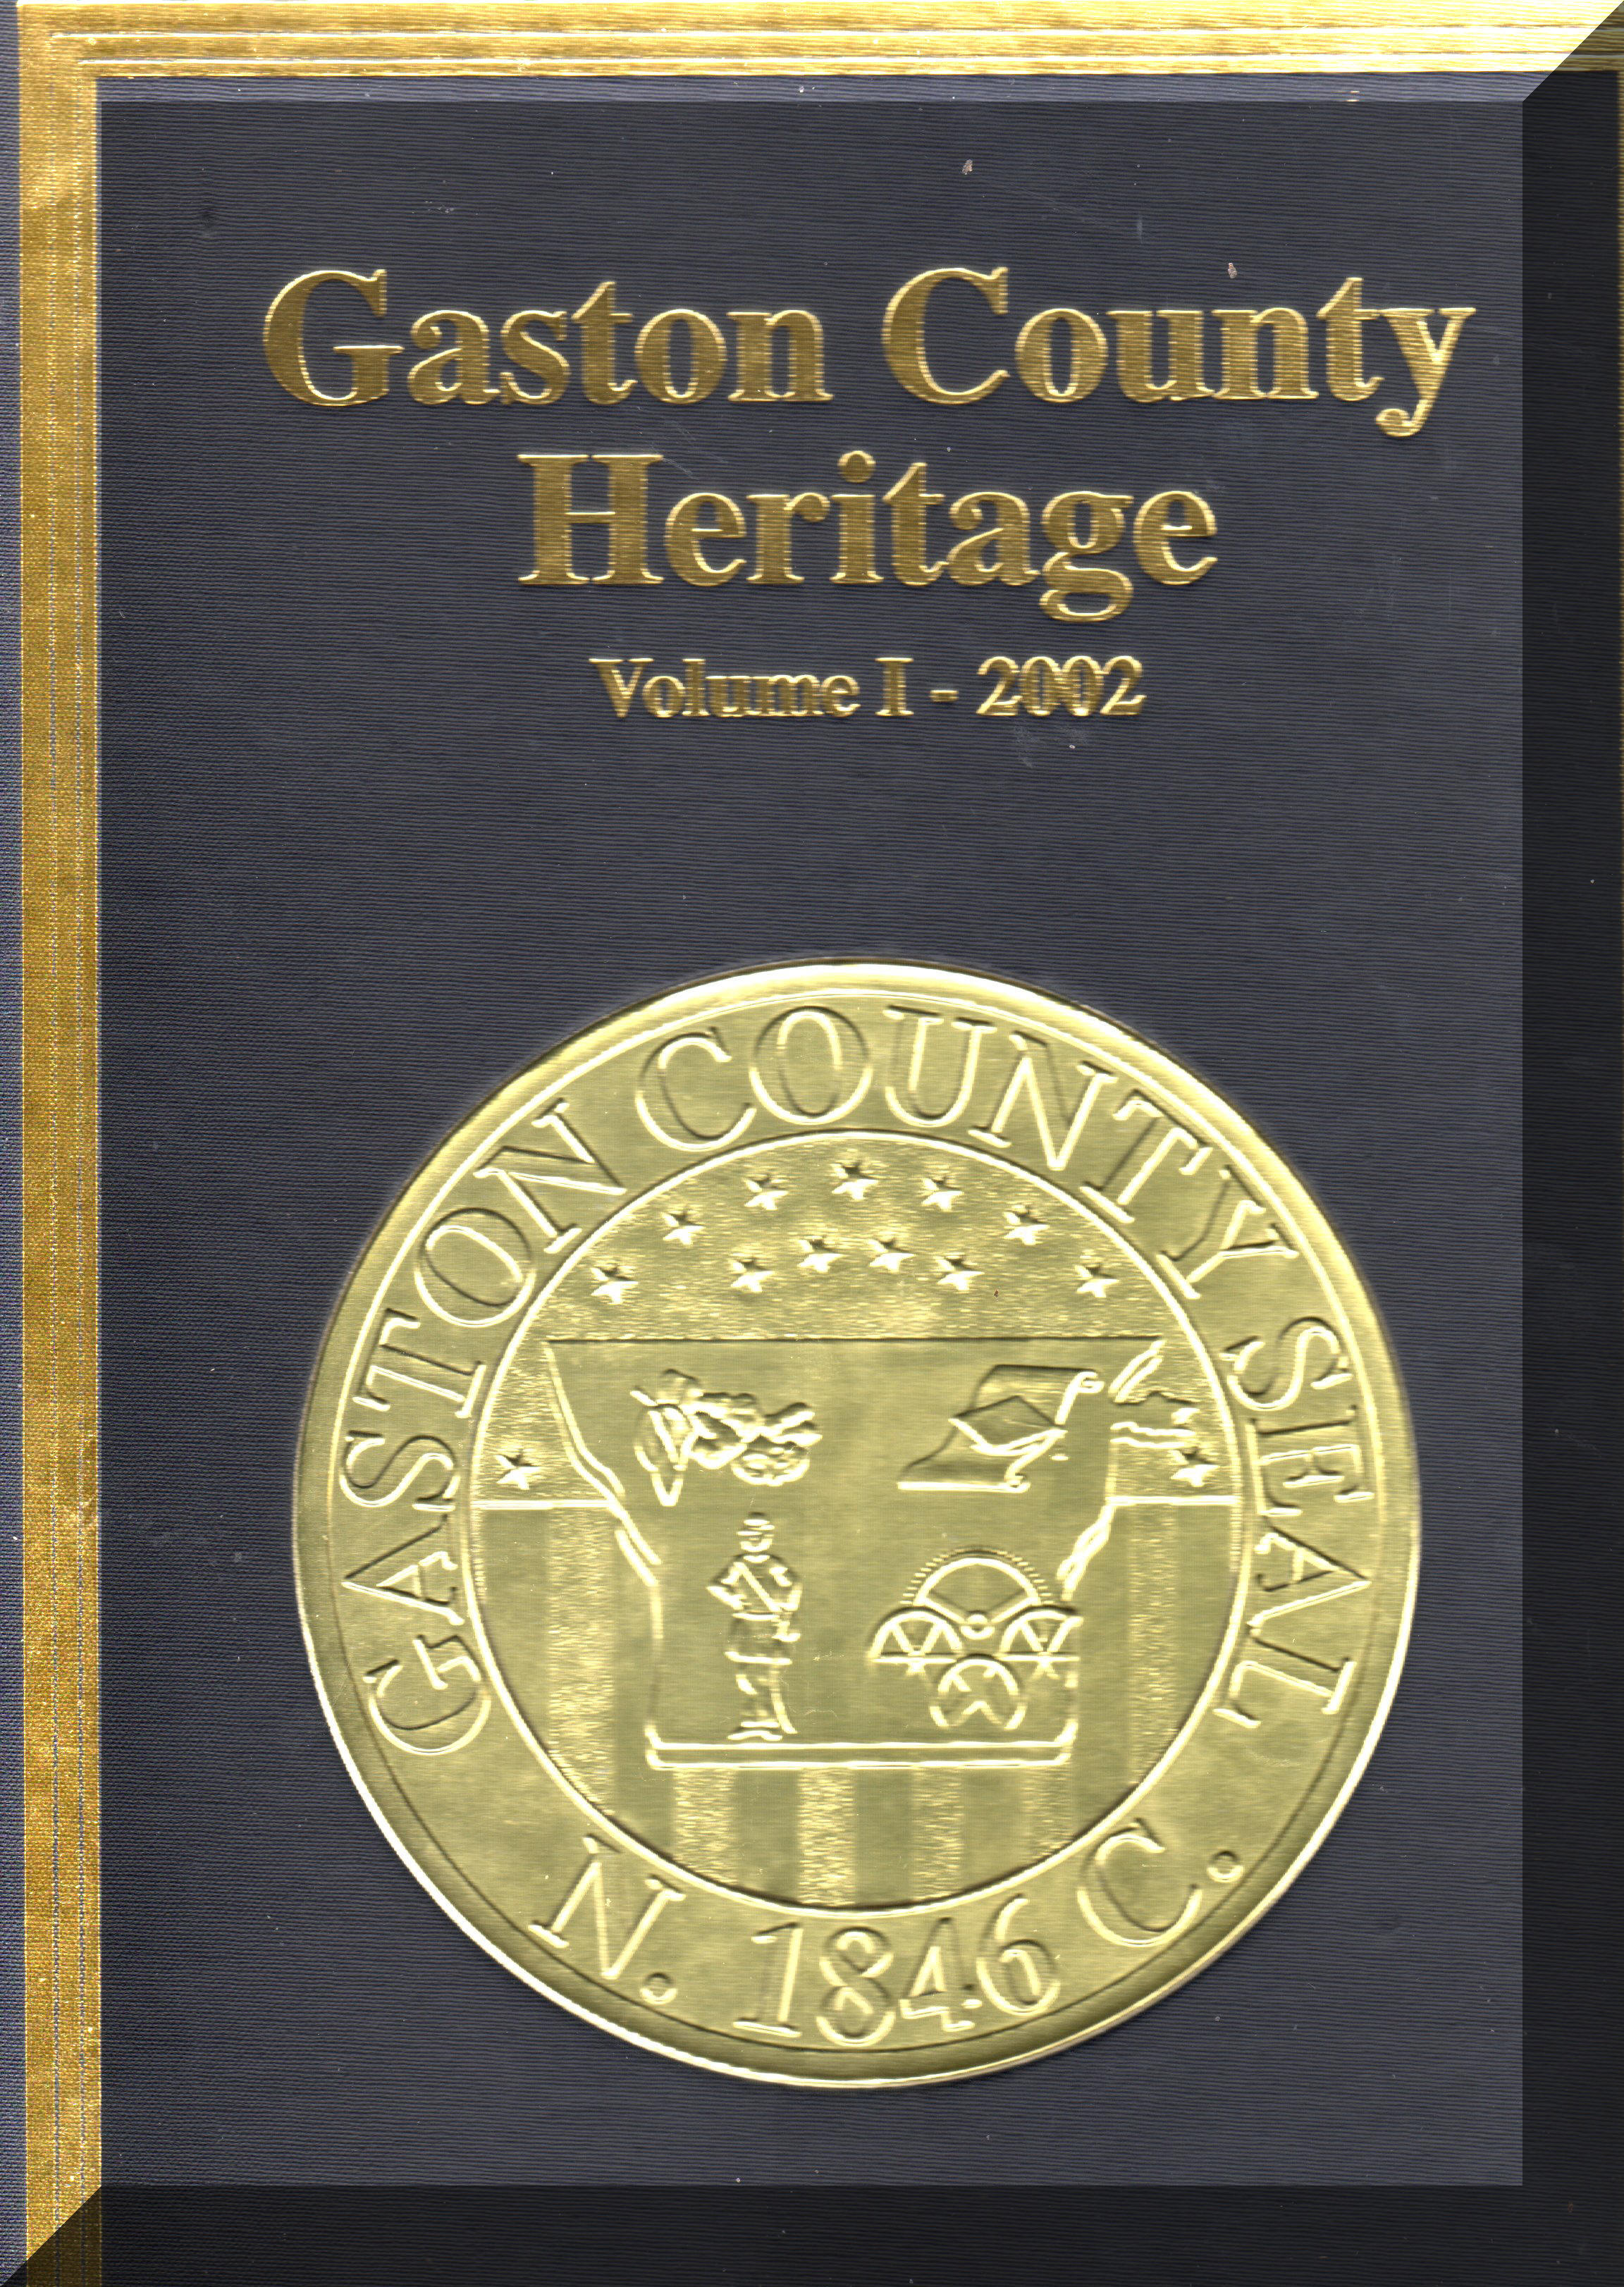 Gaston County Heritage 2002 Vol. 1